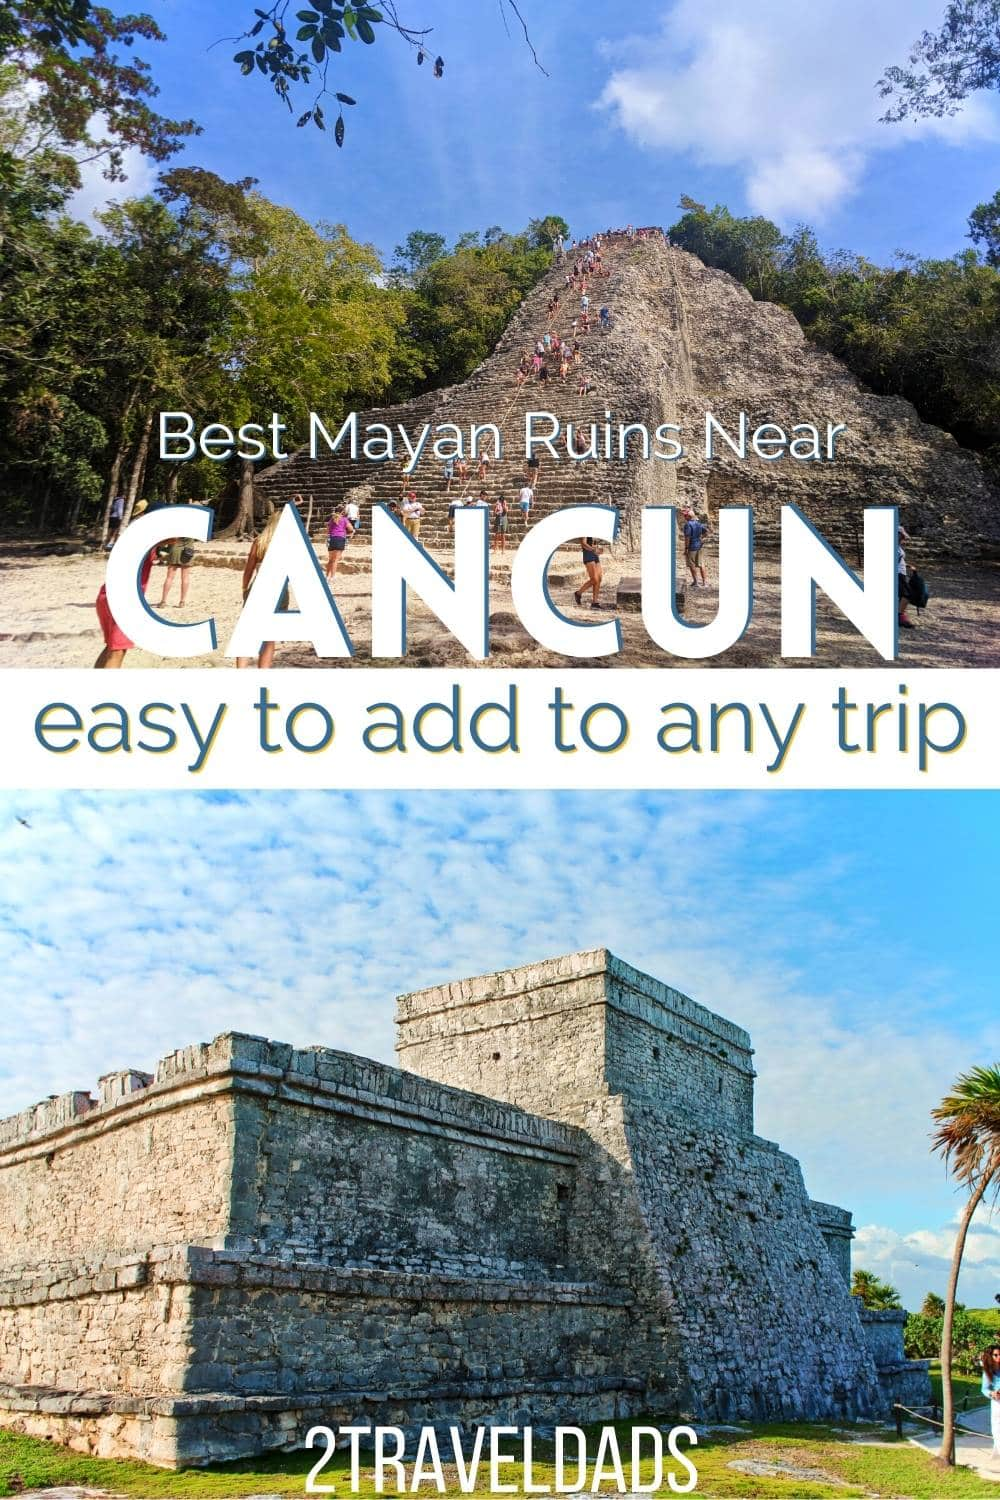 Add the best Mayan ruins near Cancun to a Yucatan vacation itinerary. From Cancun to Tulum, Mayan ruins are everywhere and are some of the most interesting things to do.